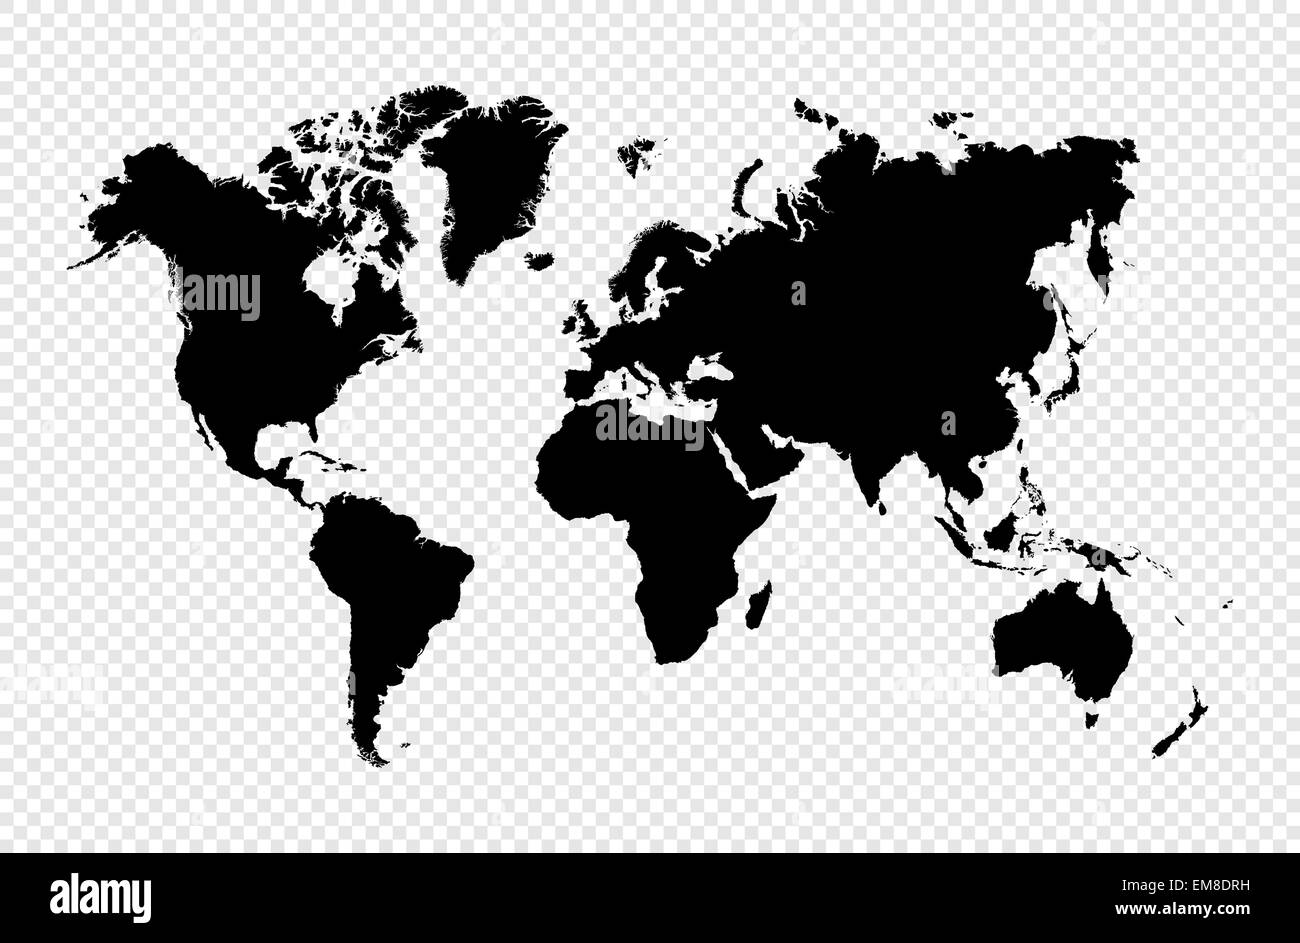 Black silhouette isolated World map EPS10 vector file. - Stock Image